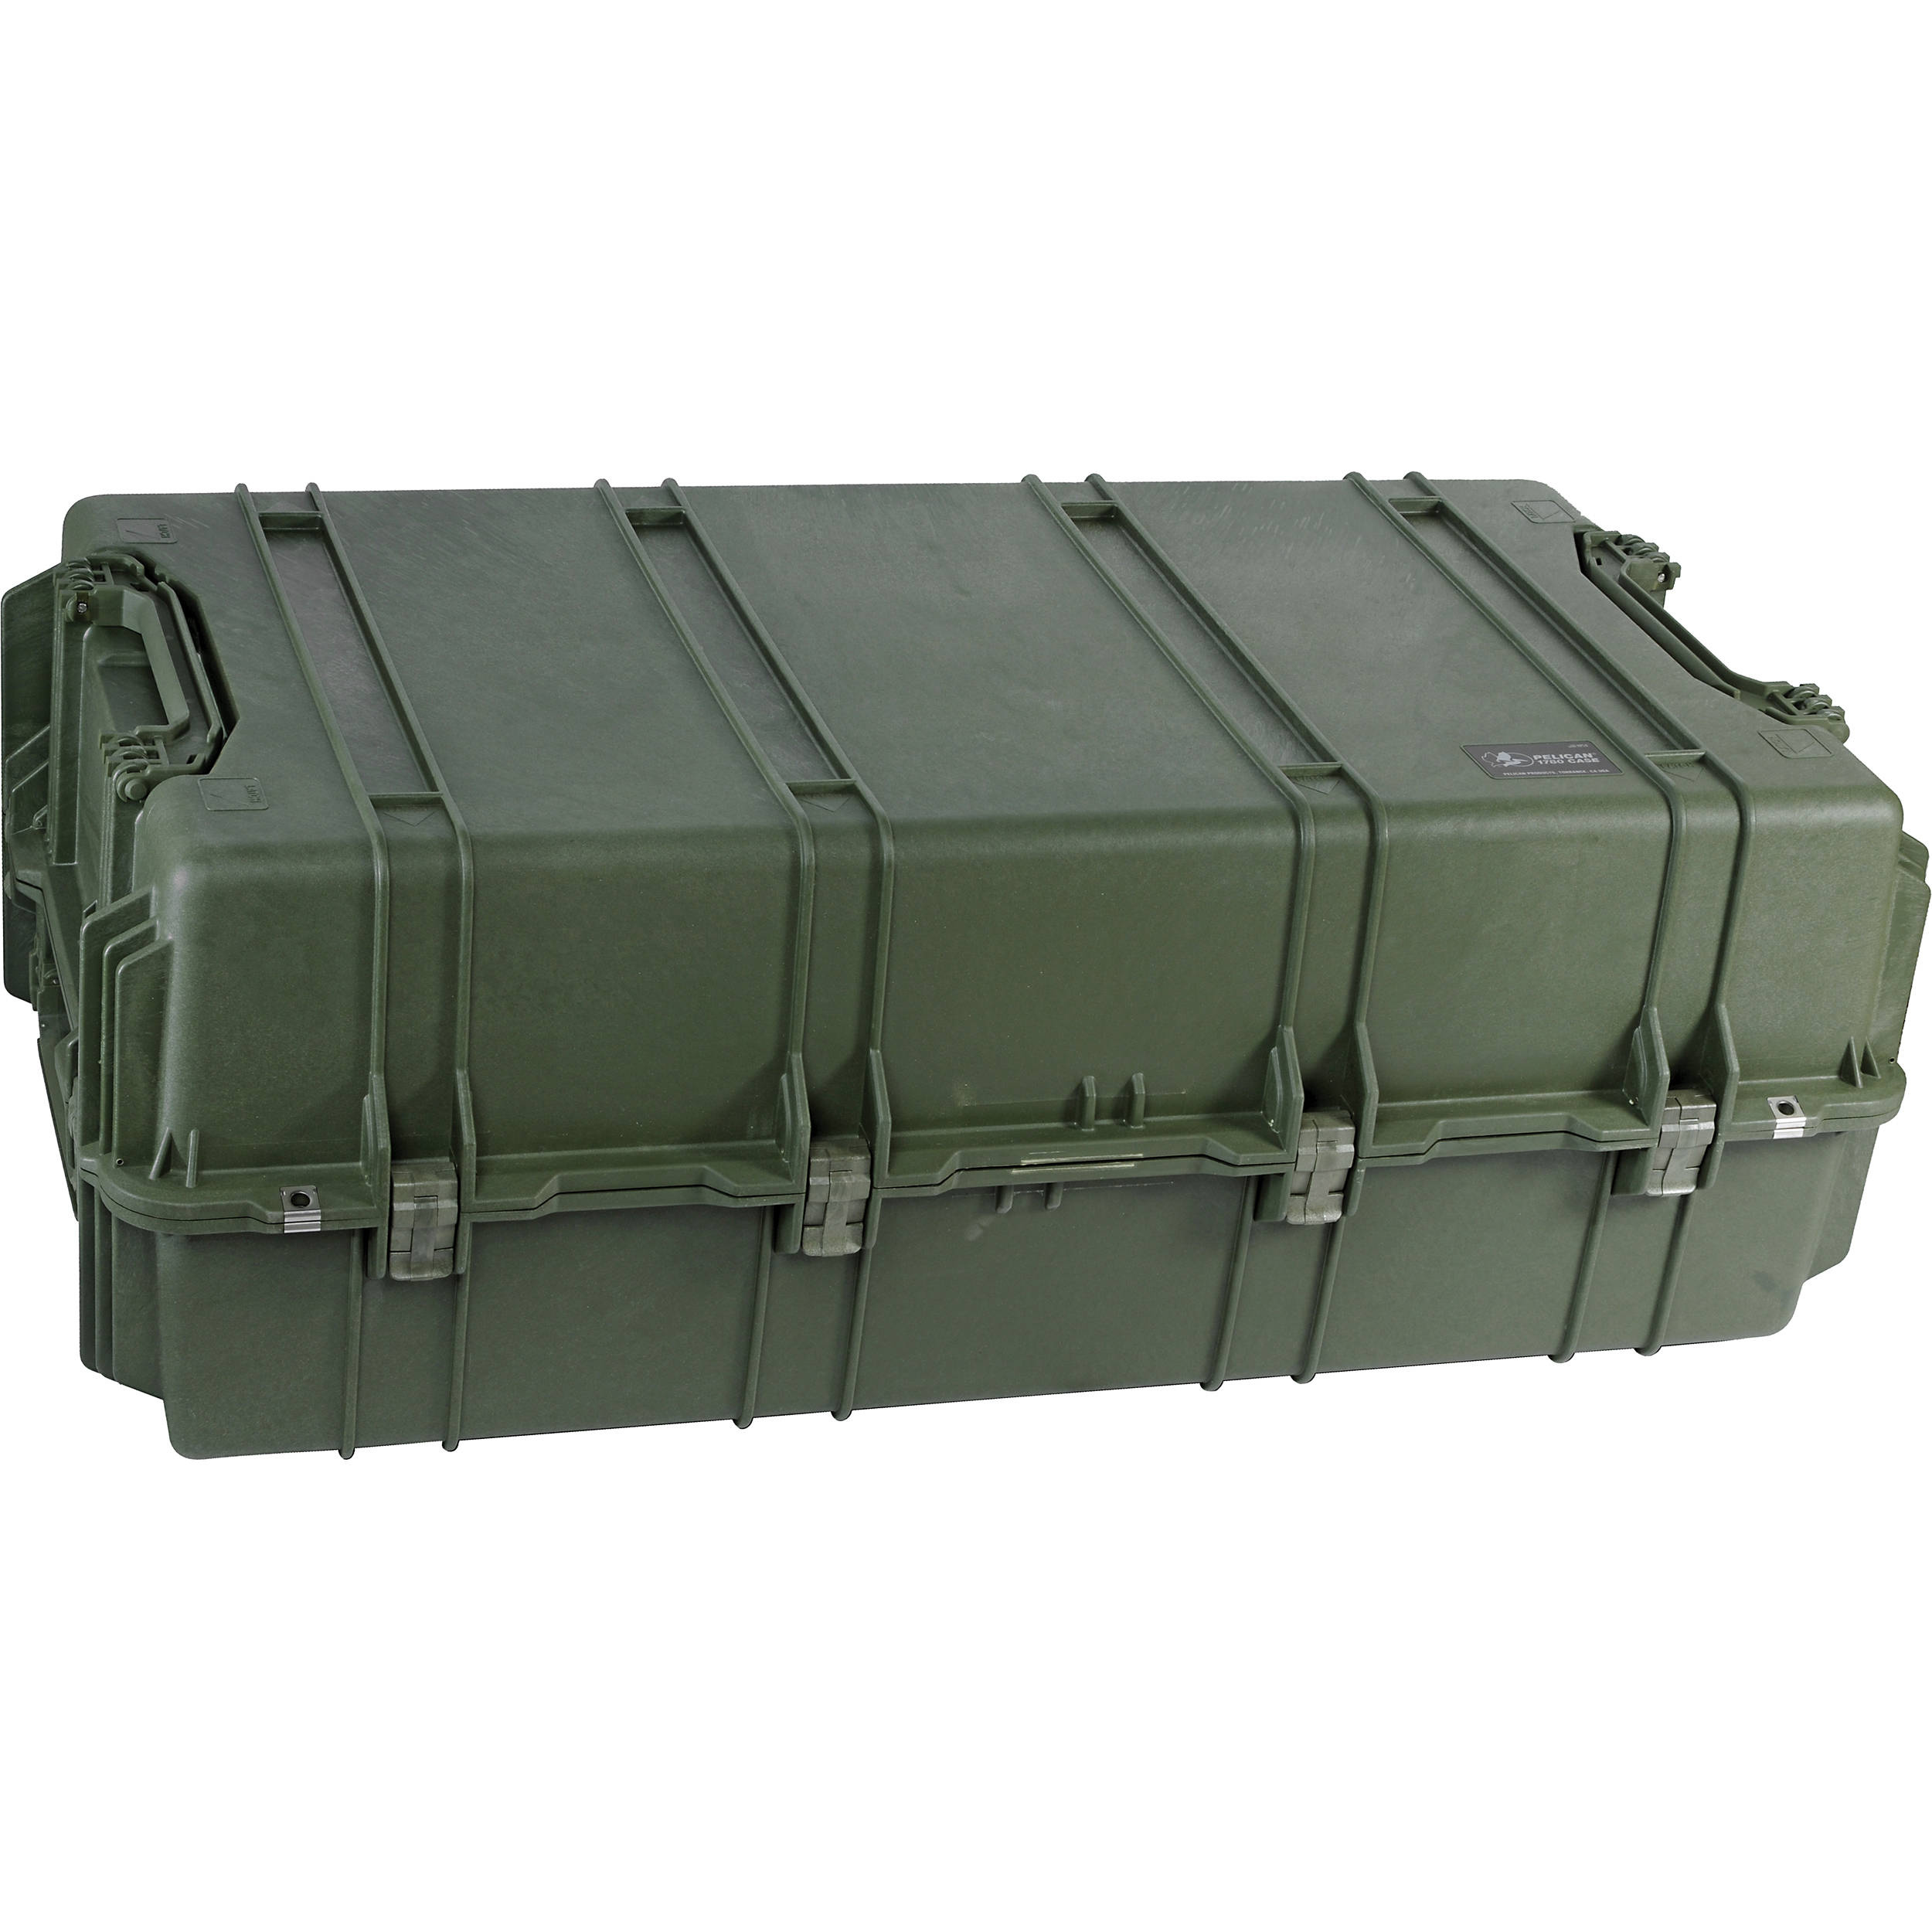 Pelican 1780W Transport Case with Rigid Polyethylene Tray (Olive Drab Green)